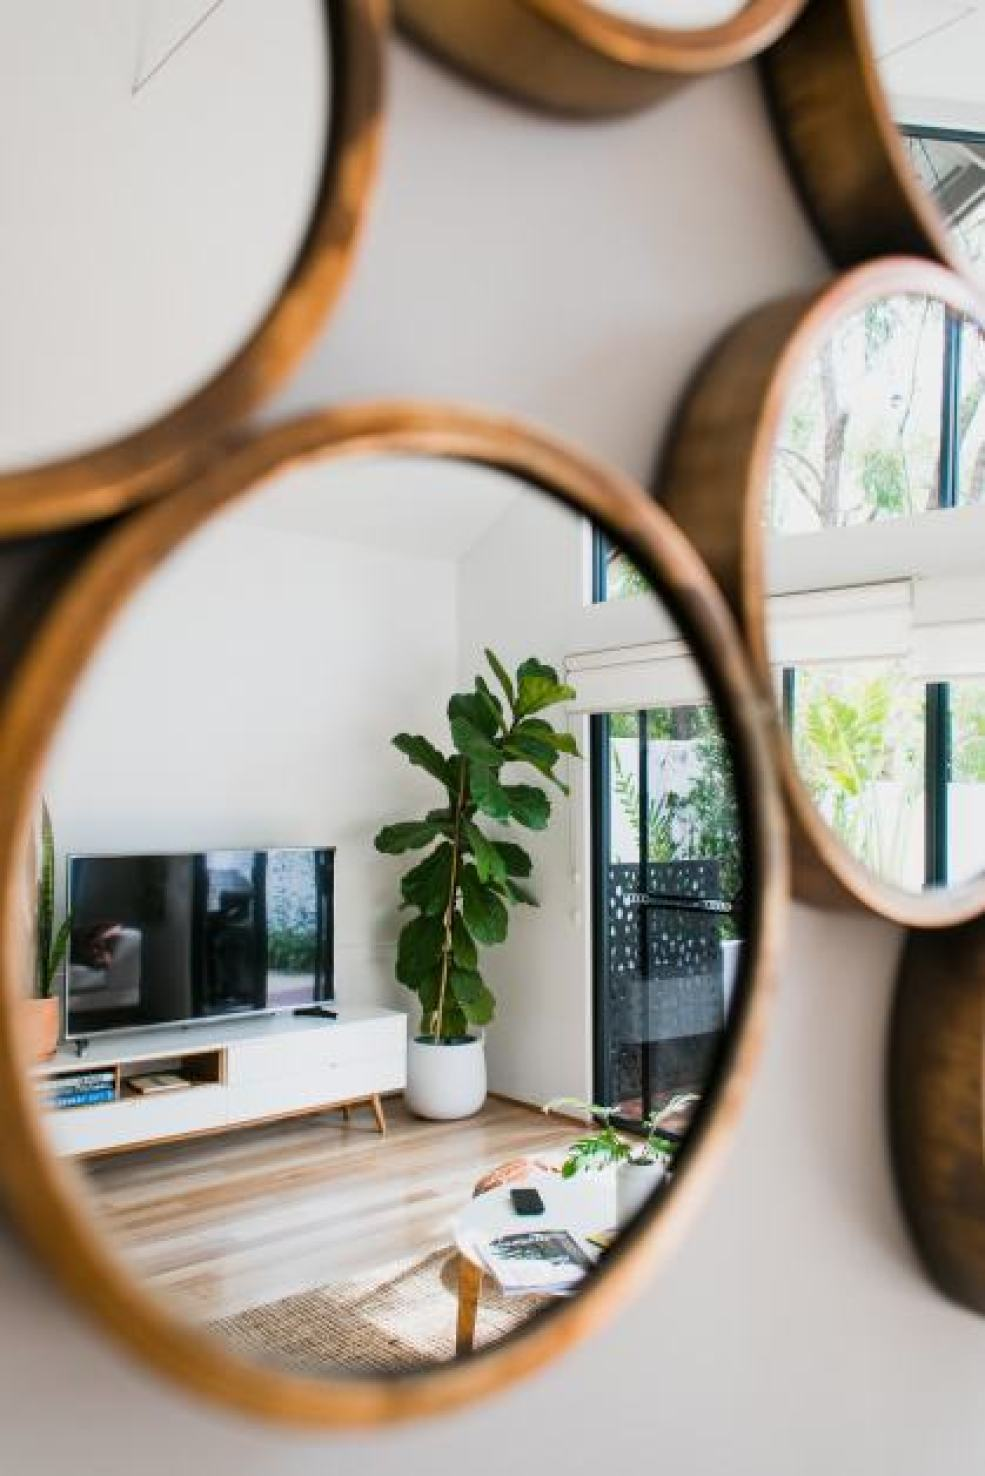 mirror and window of home decor